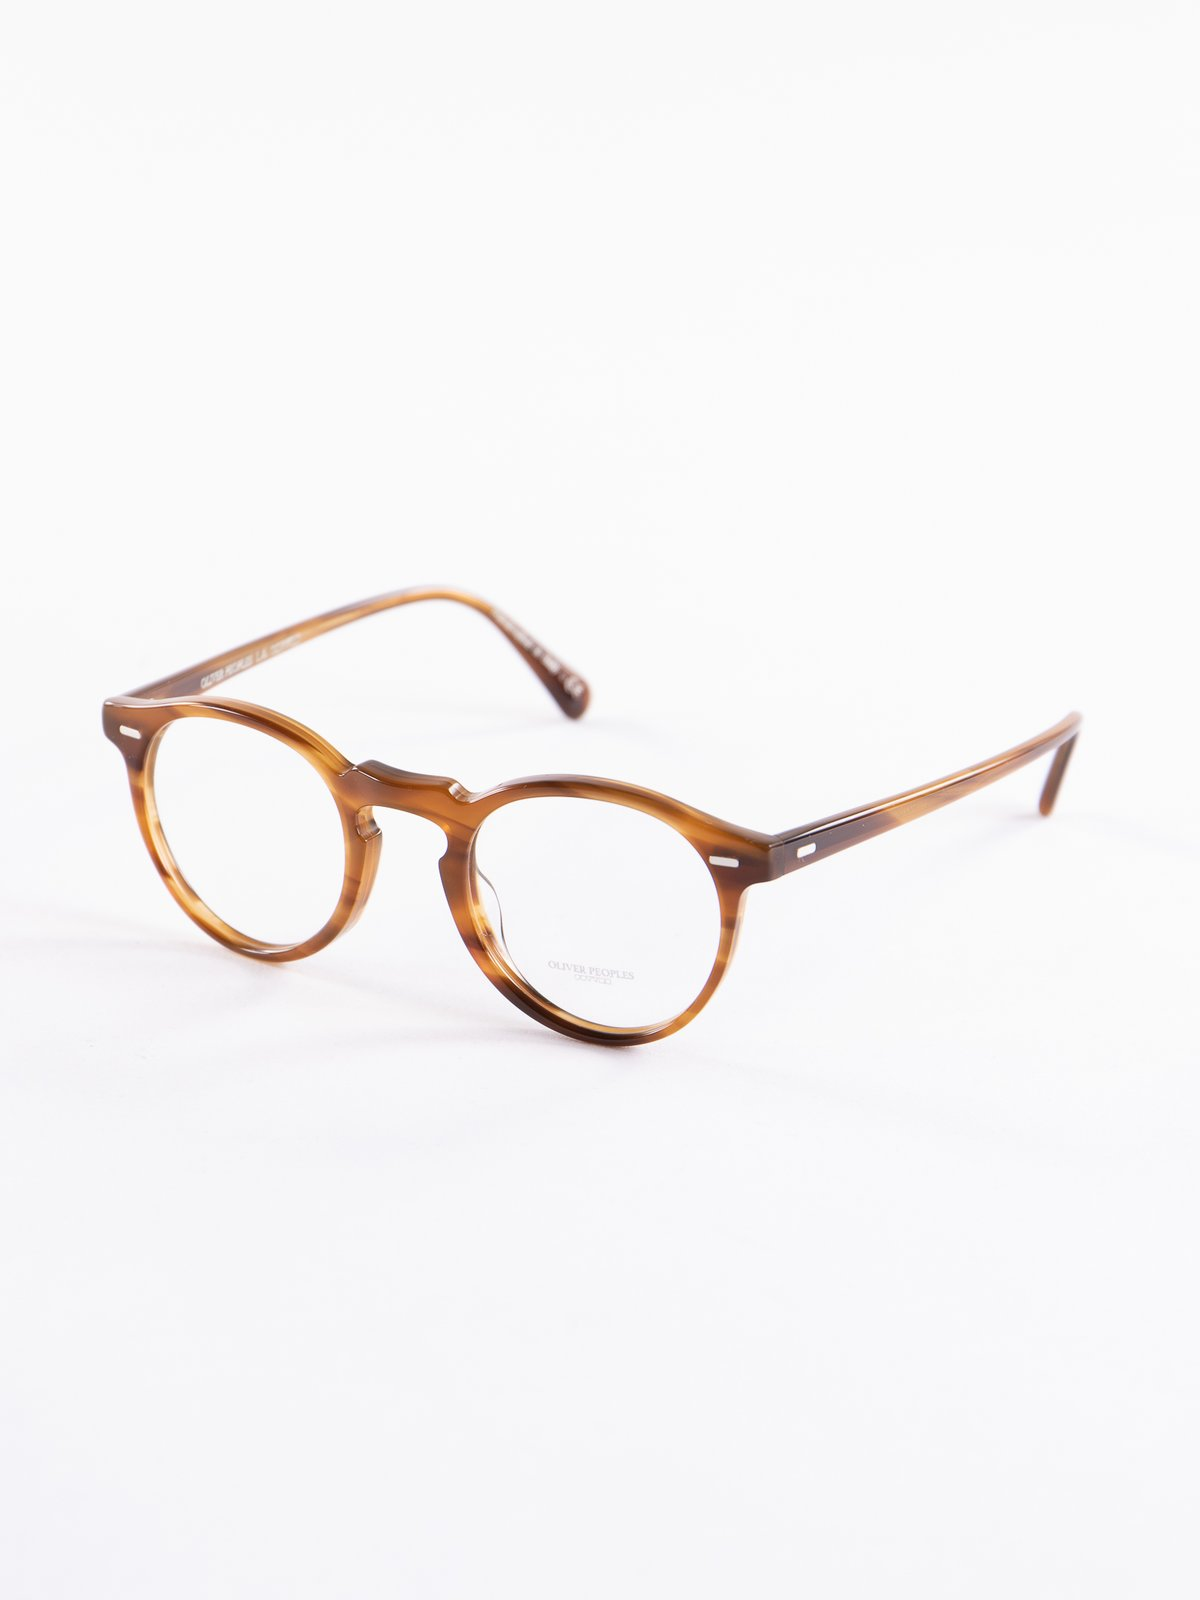 Raintree Gregory Peck Optical Frame - Image 3